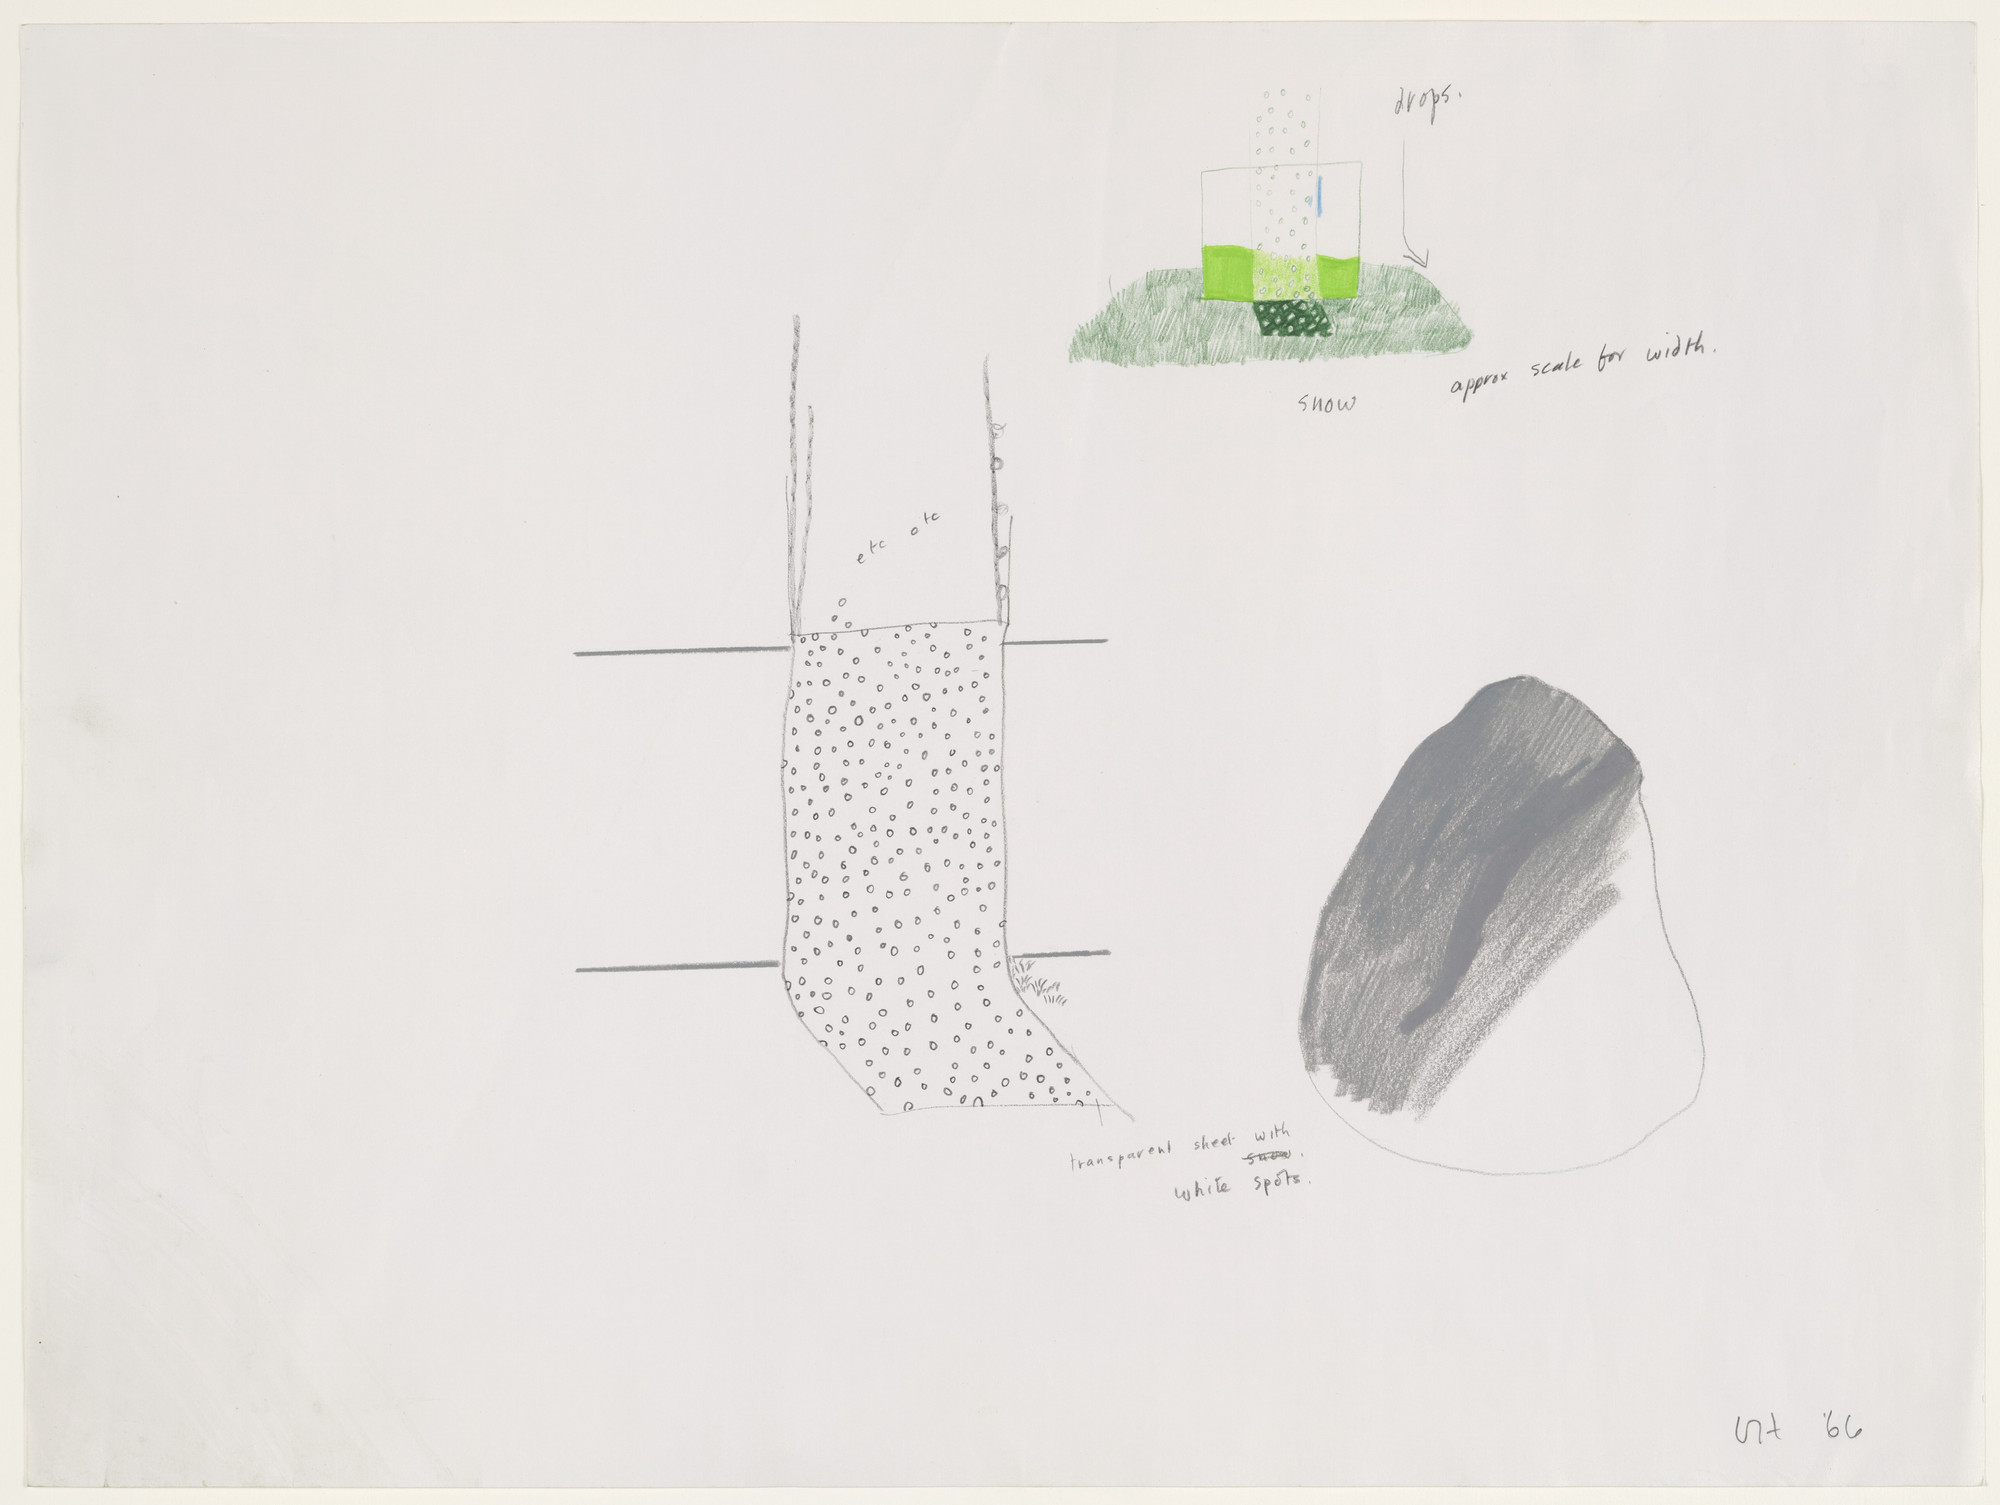 David Hockney. Snowy Landscape and Flat Rock, design for Ubu Roi. (1966)